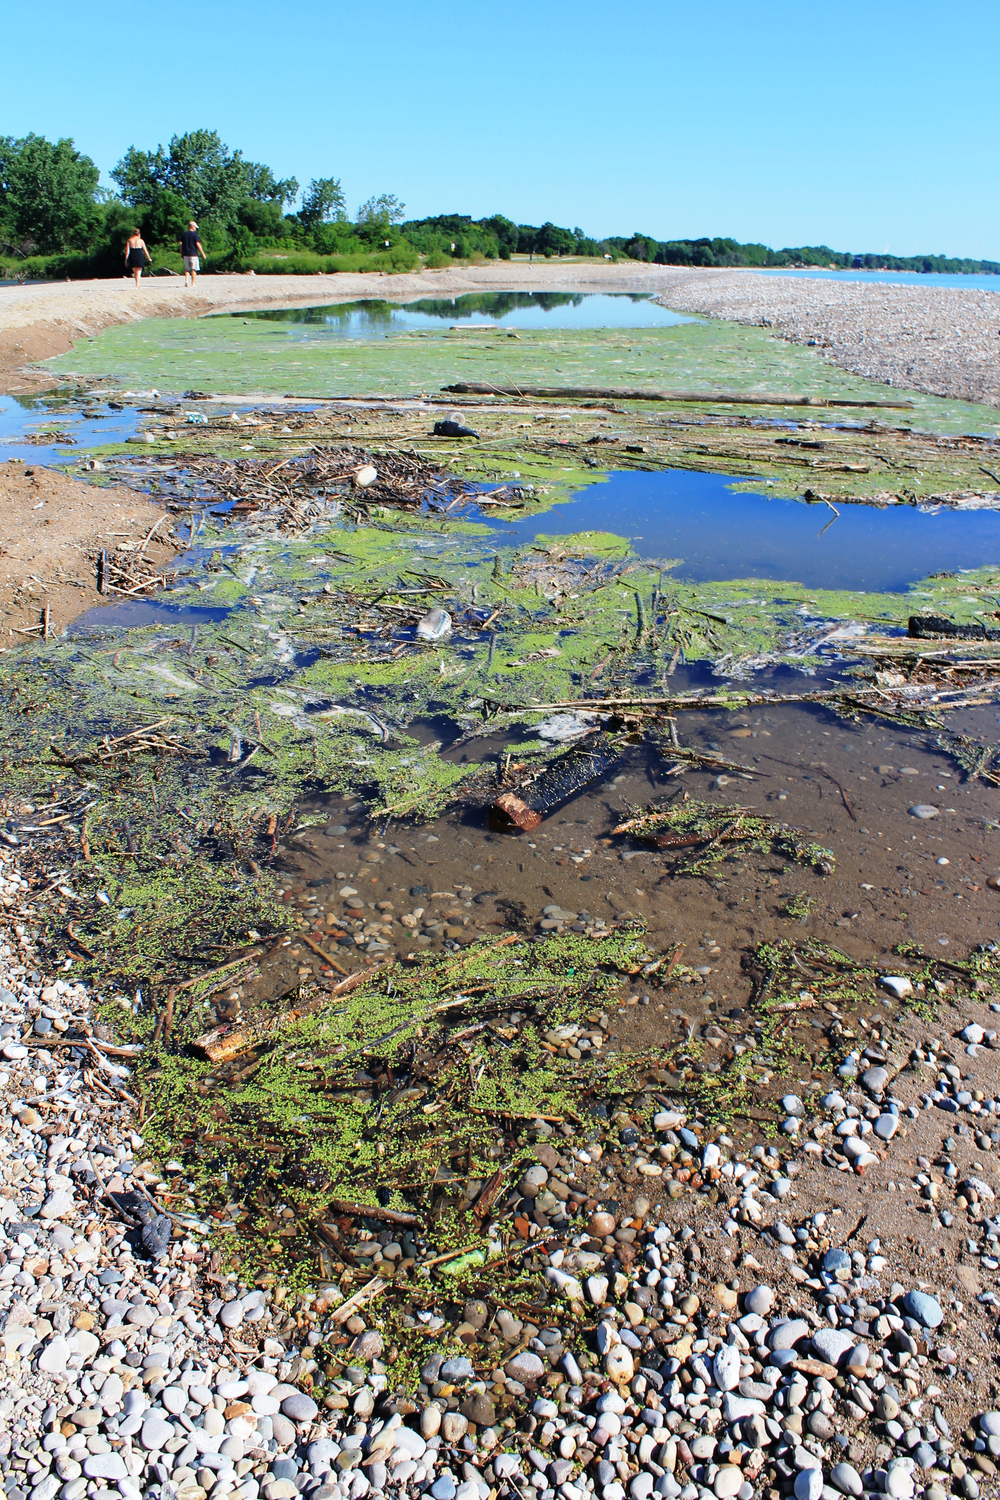 Algae growth at the mouth of the Pike River